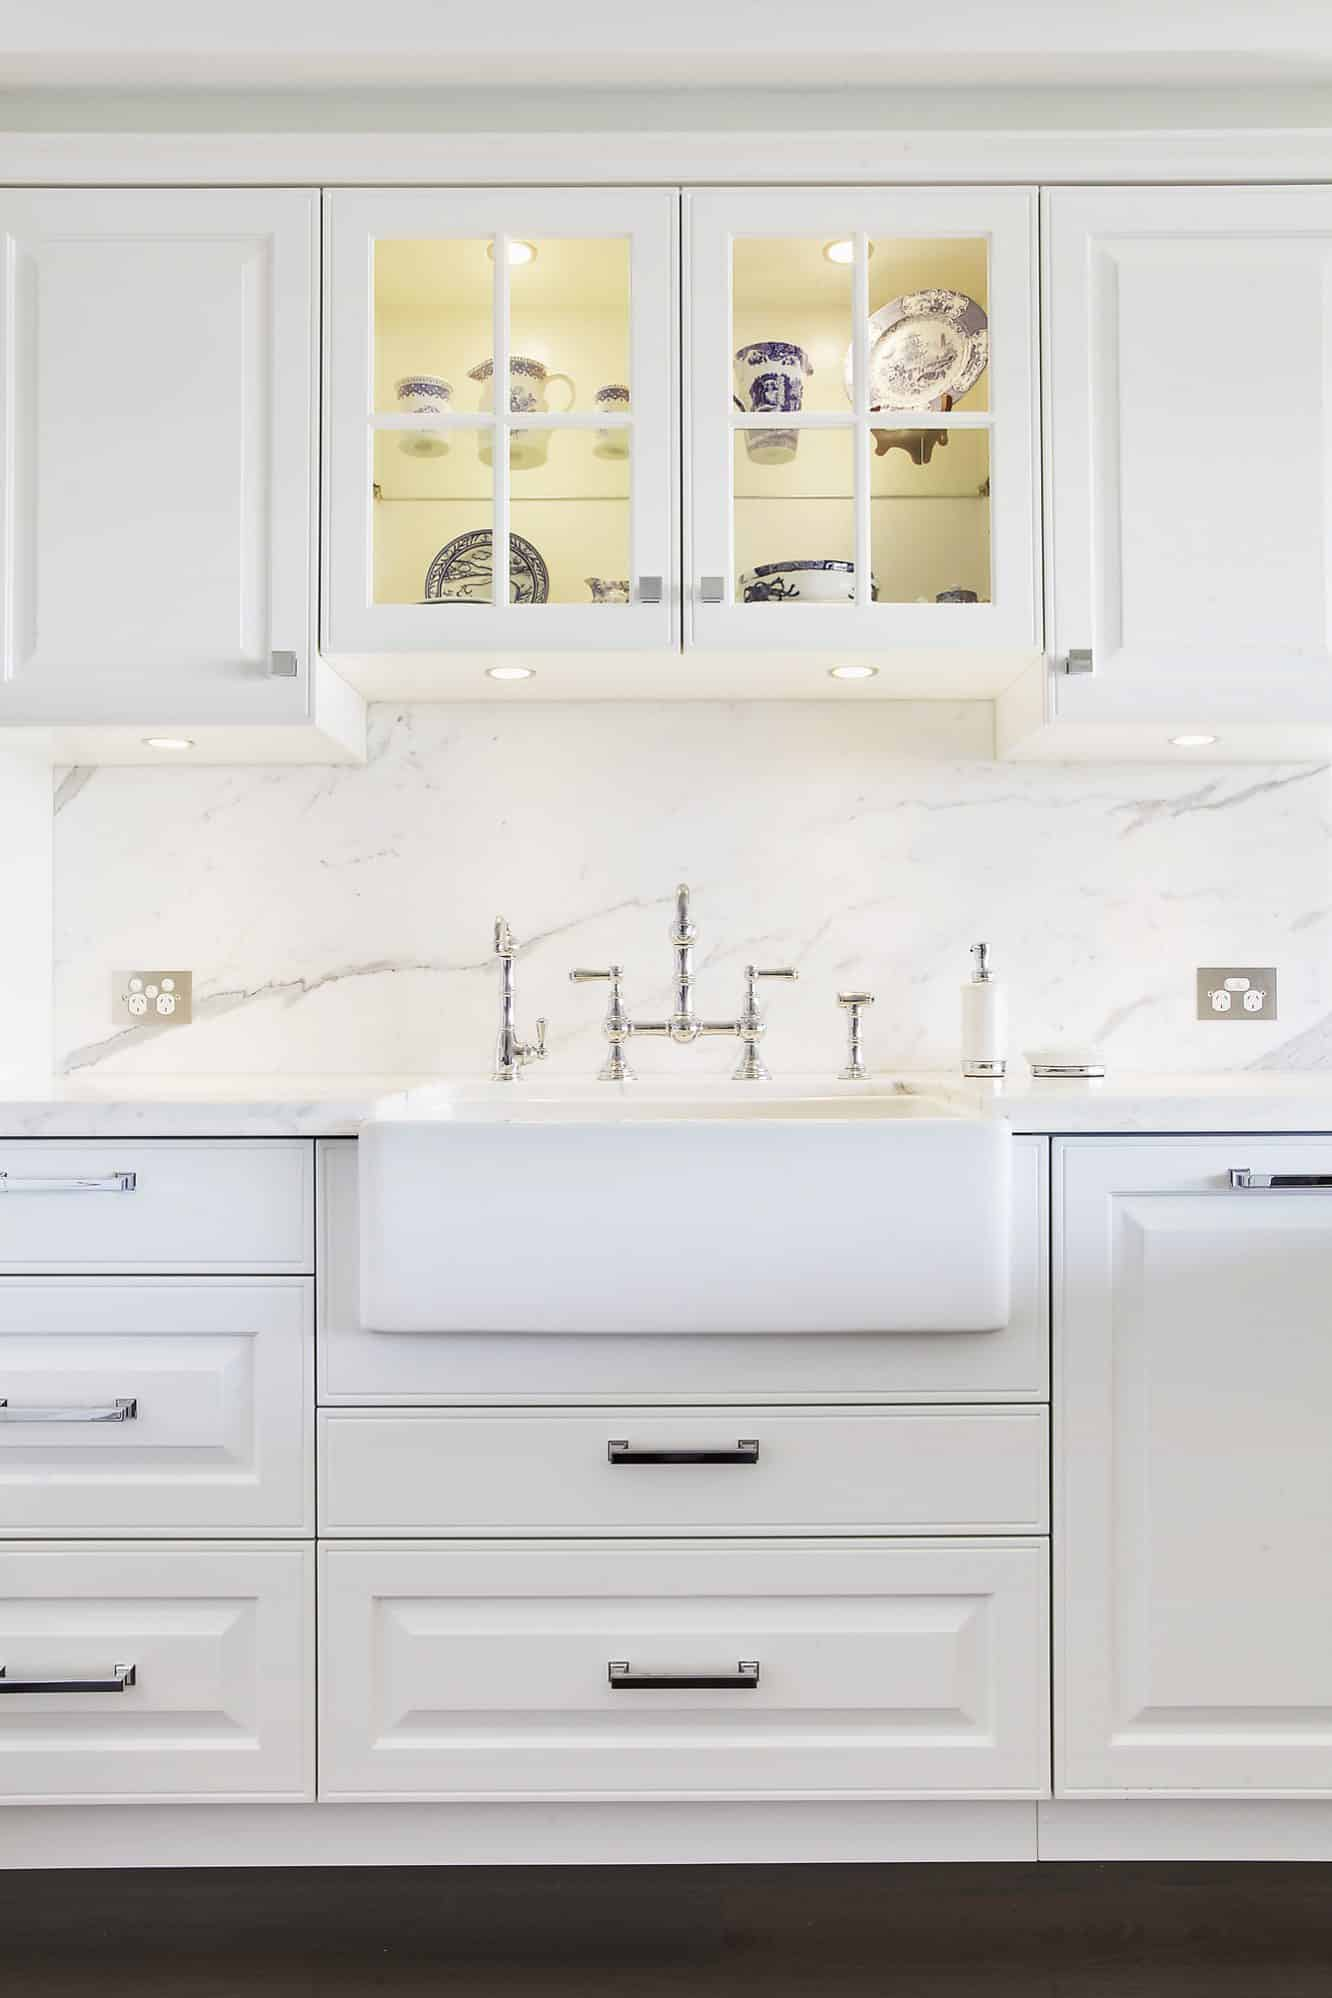 Farmhouse fireclay sink with Perrin and Rowe taps